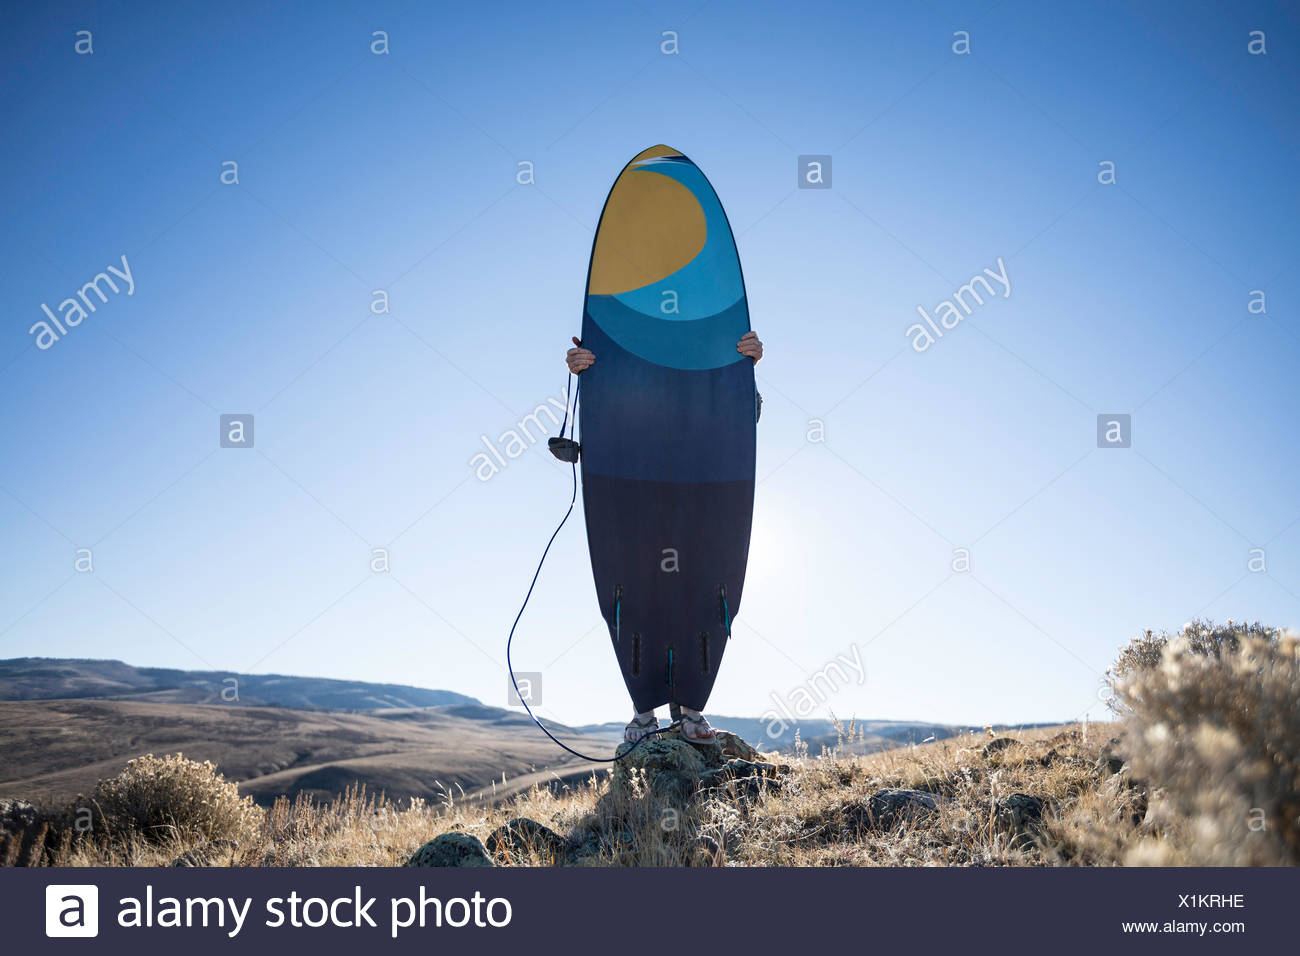 Man holding a surfboard in the desert, Wyoming, America, USA Stock Photo